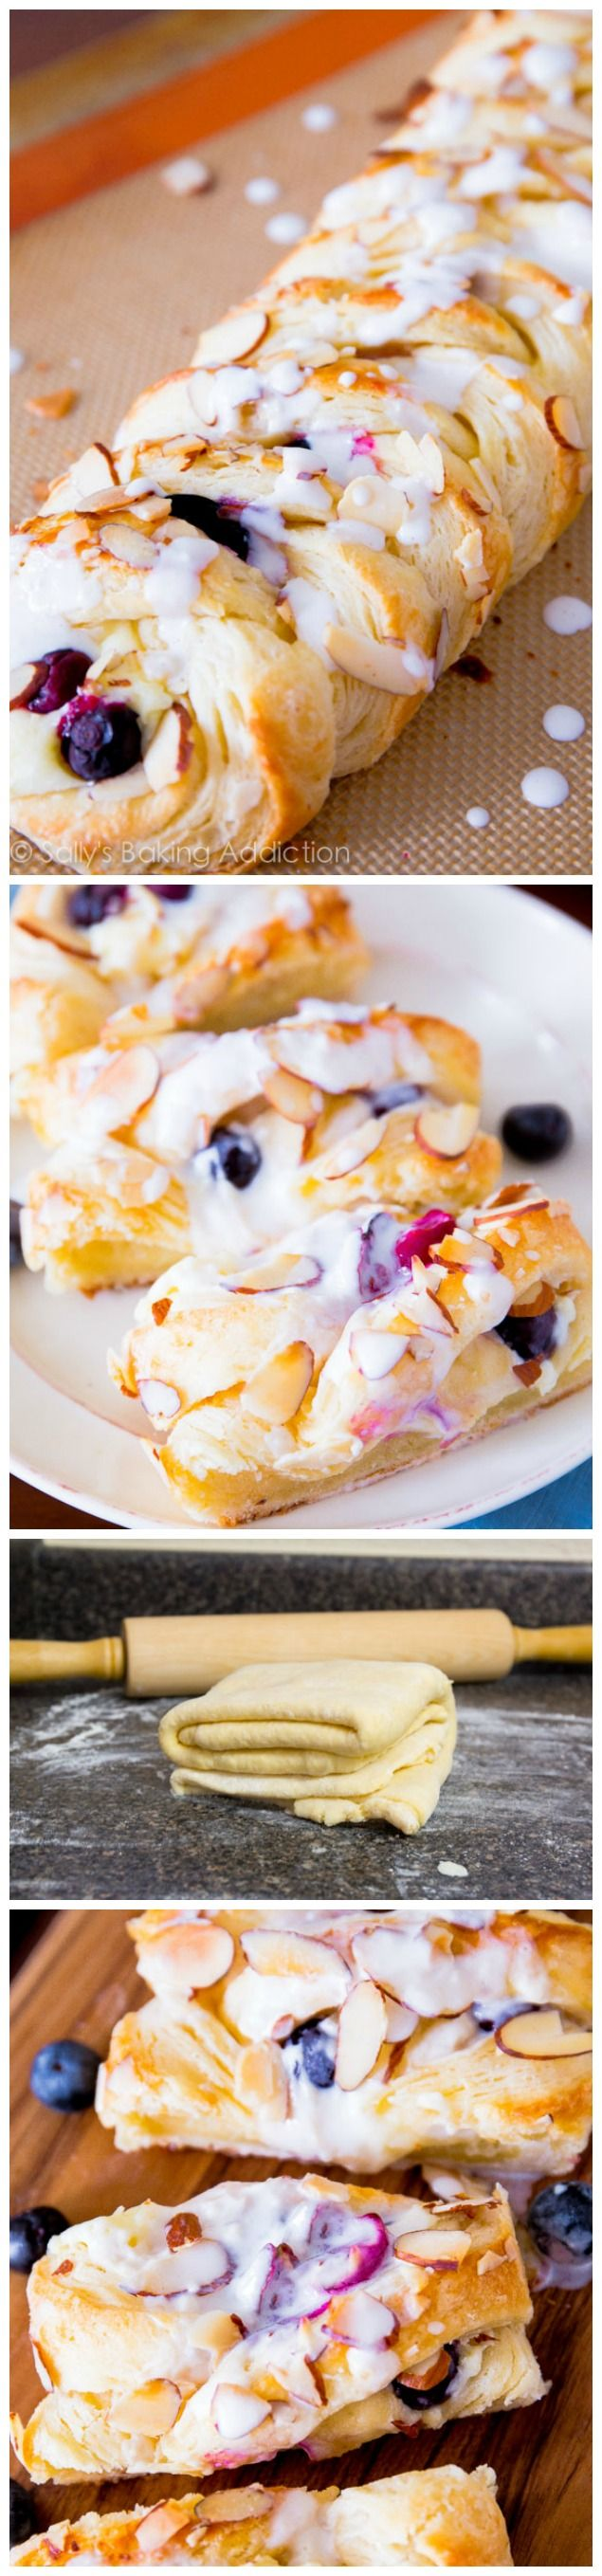 Homemade Blueberries 'n Cream Danish! Buttery, flaky, creamy, and SO simple with these easy instructions.